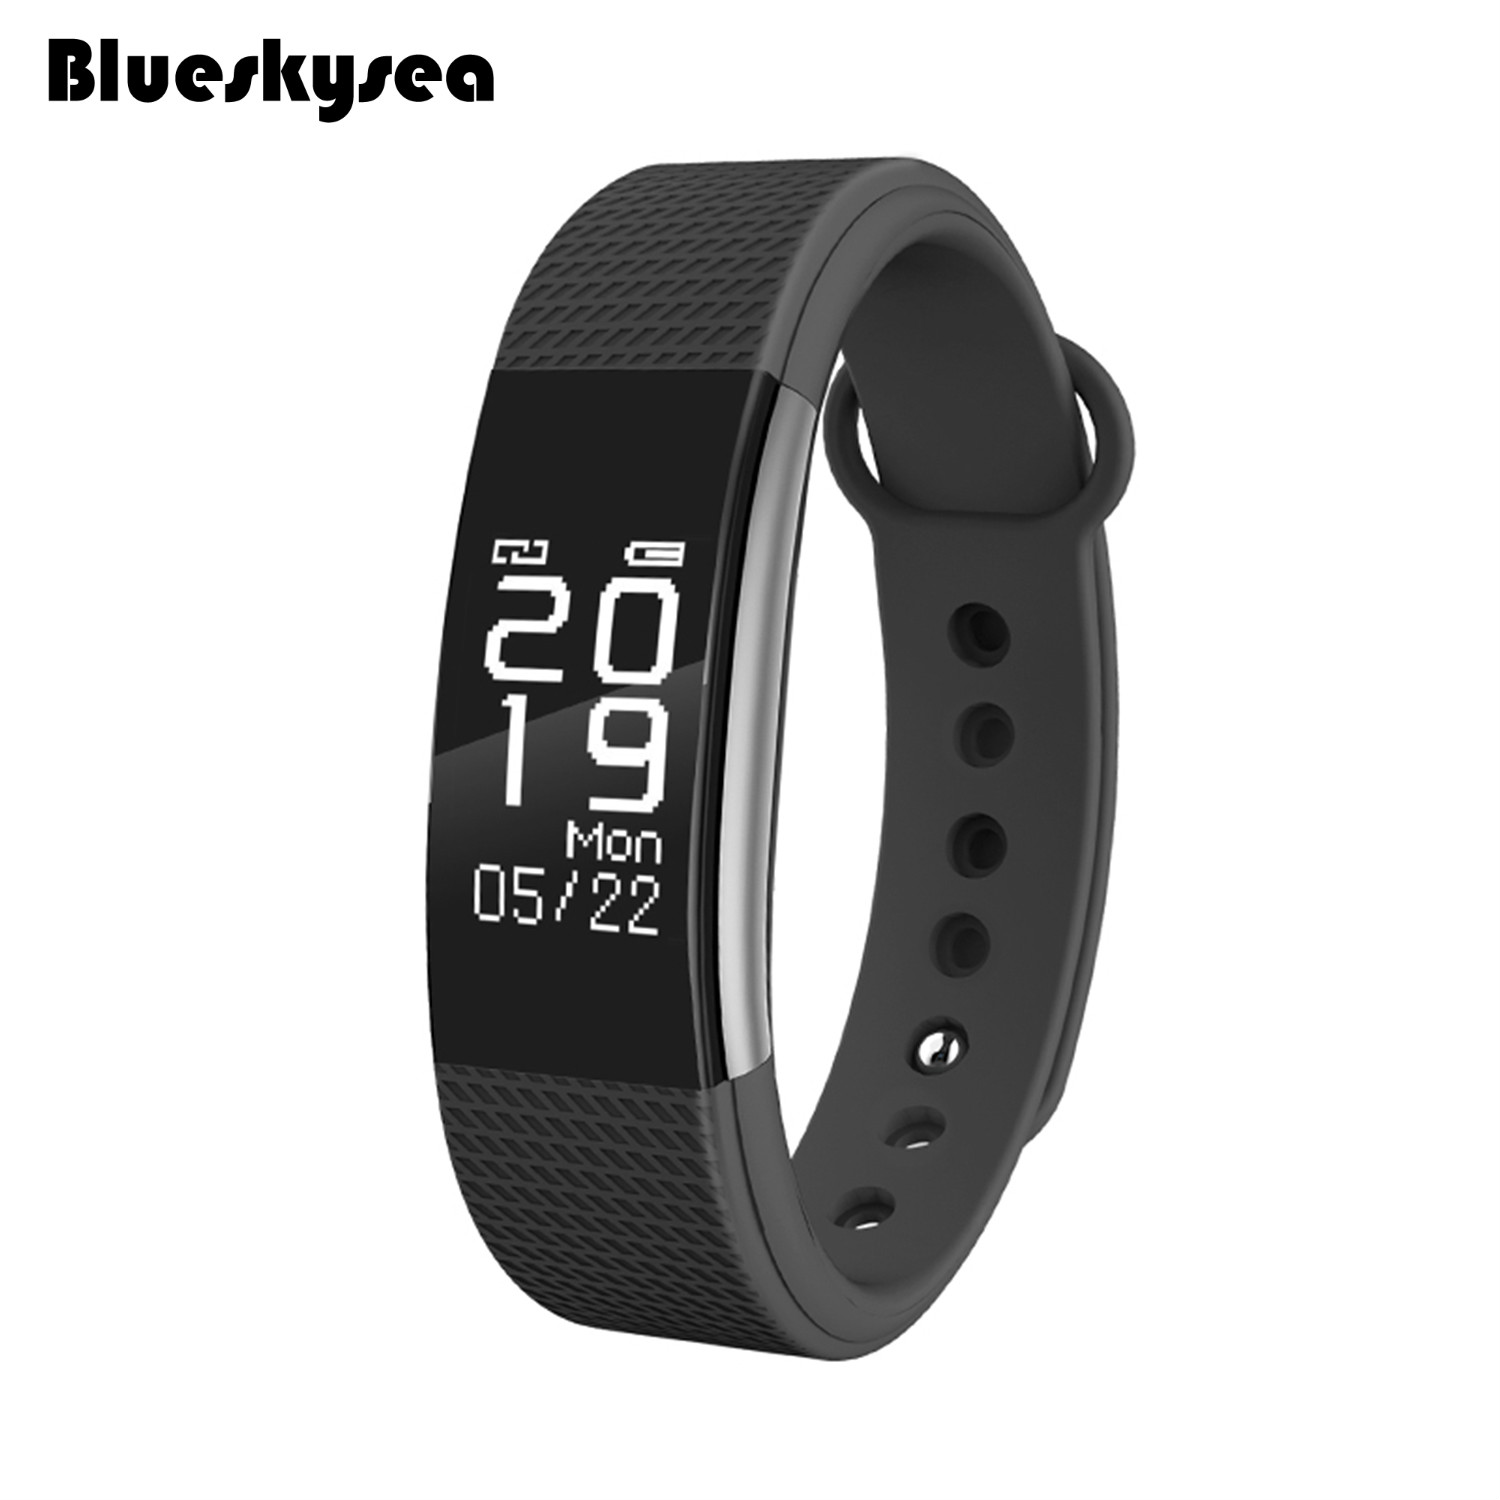 Blueskysea F1 Smart Watch Blood Pressure Heart Rate Monitor Fitness Tracker Band Touchscreen <font><b>IP67</b></font> for IOS Android <font><b>Smartphone</b></font>